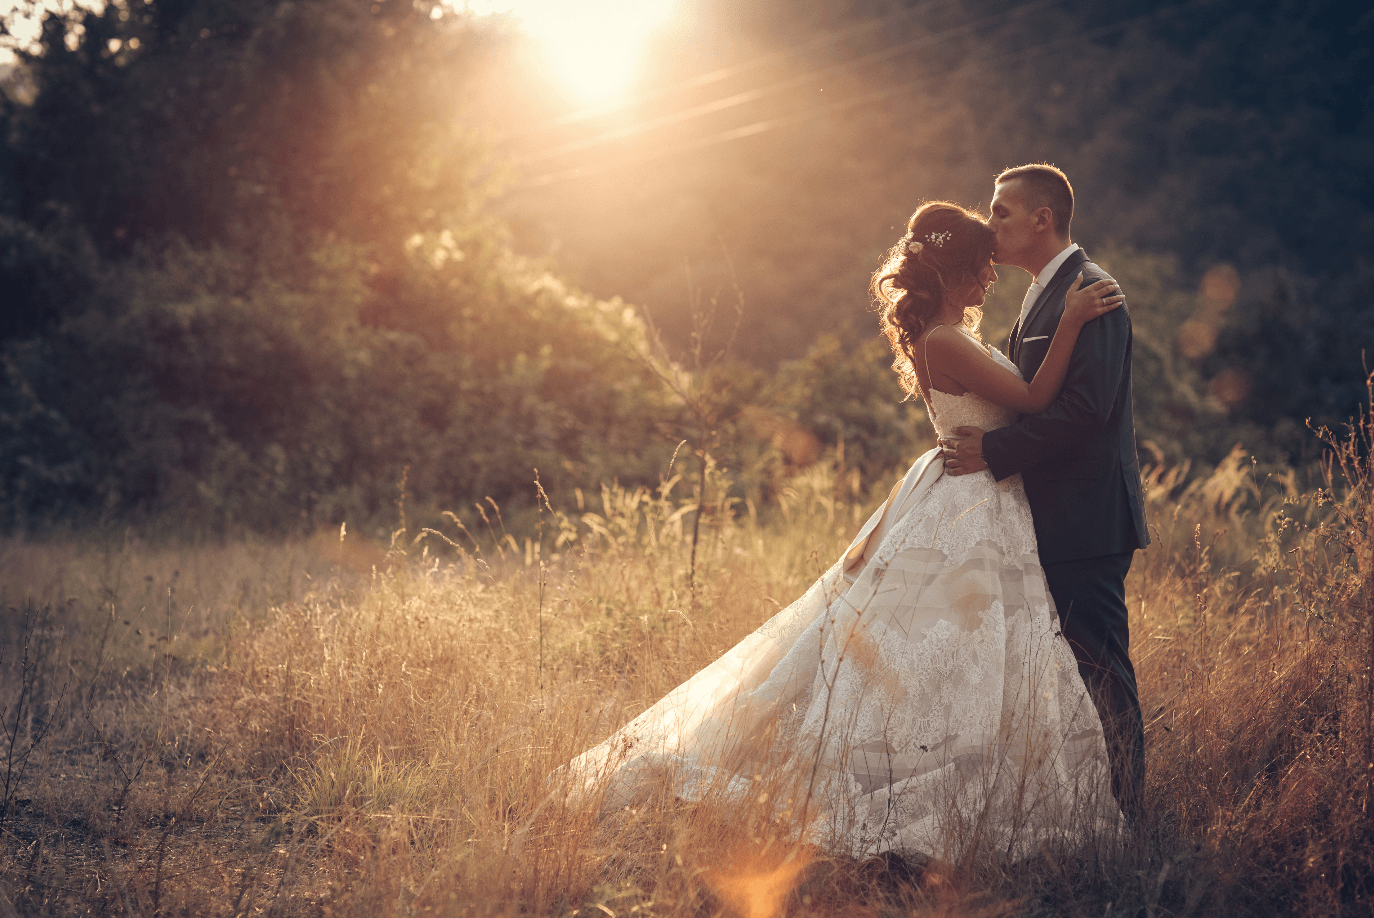 Groom kisses bride in field at sunset